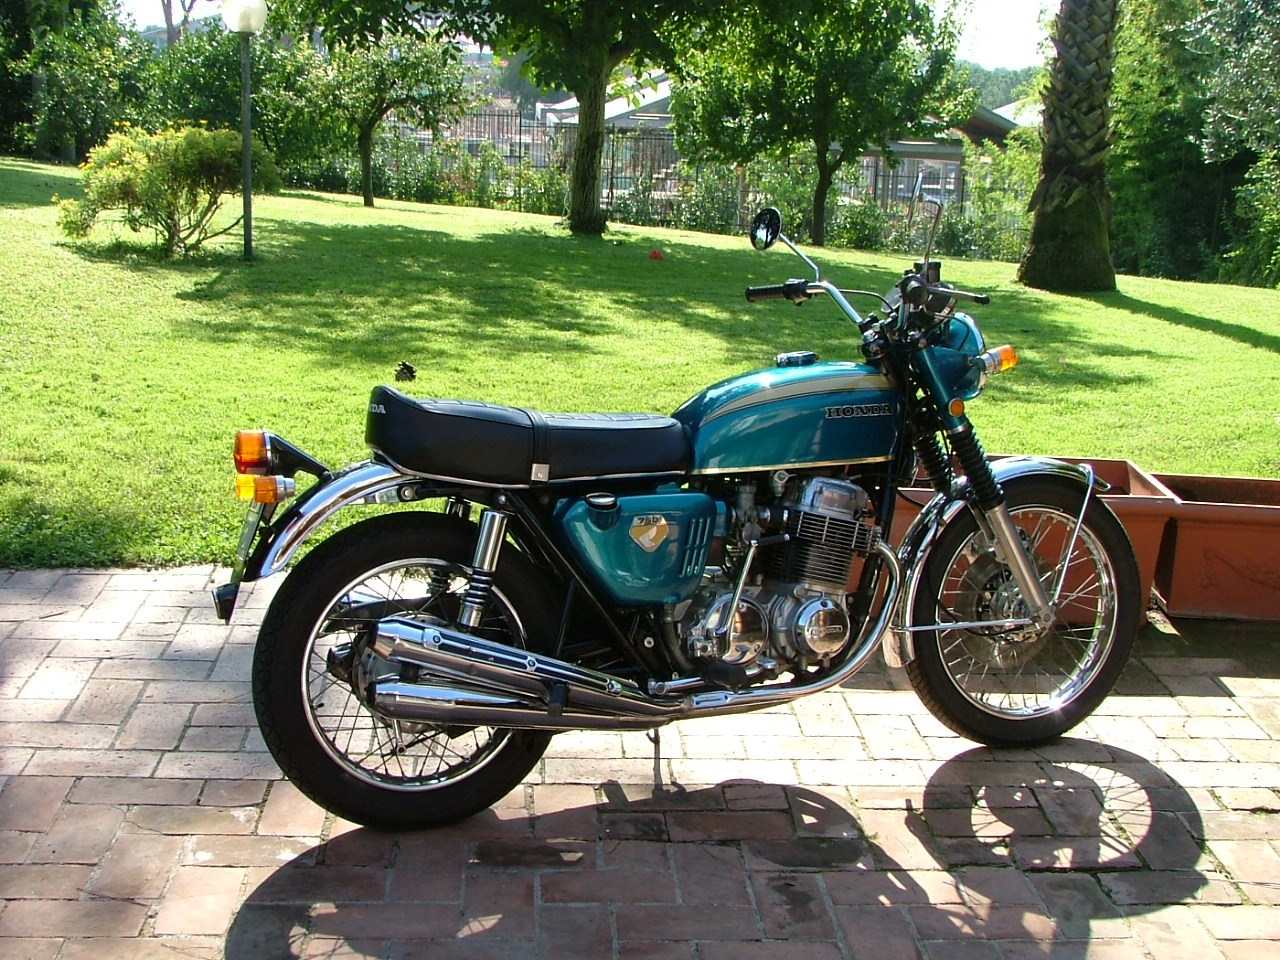 1969 1978 Honda Cb750 Top Speed Cb350 Simple Wiring Diagram Google Search Useful